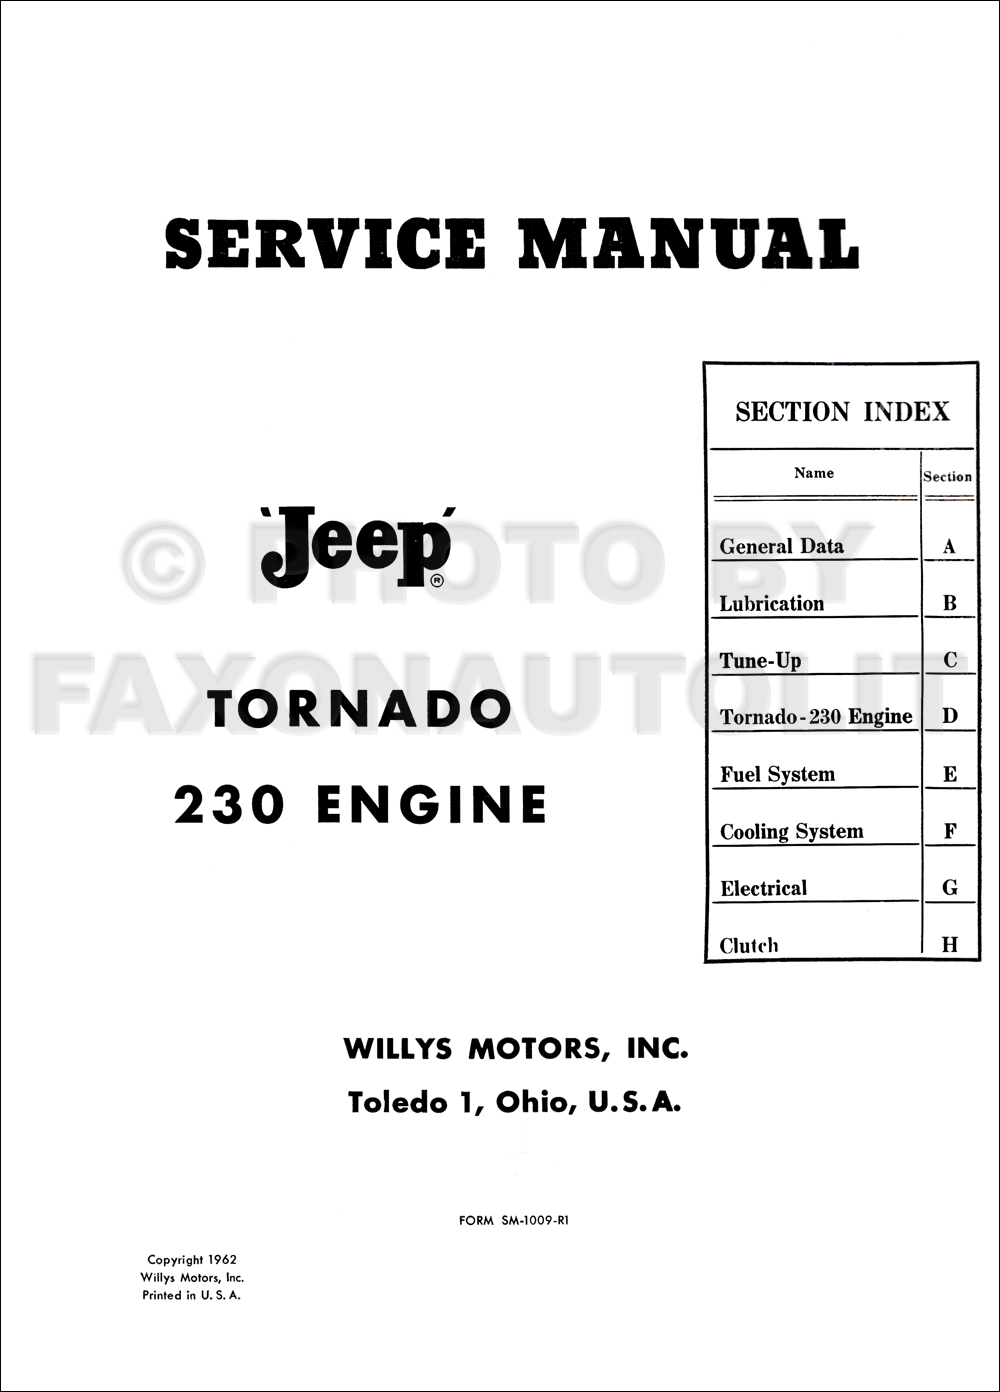 1962-1965 Jeep Tornado 230 Engine Repair Shop Manual Original